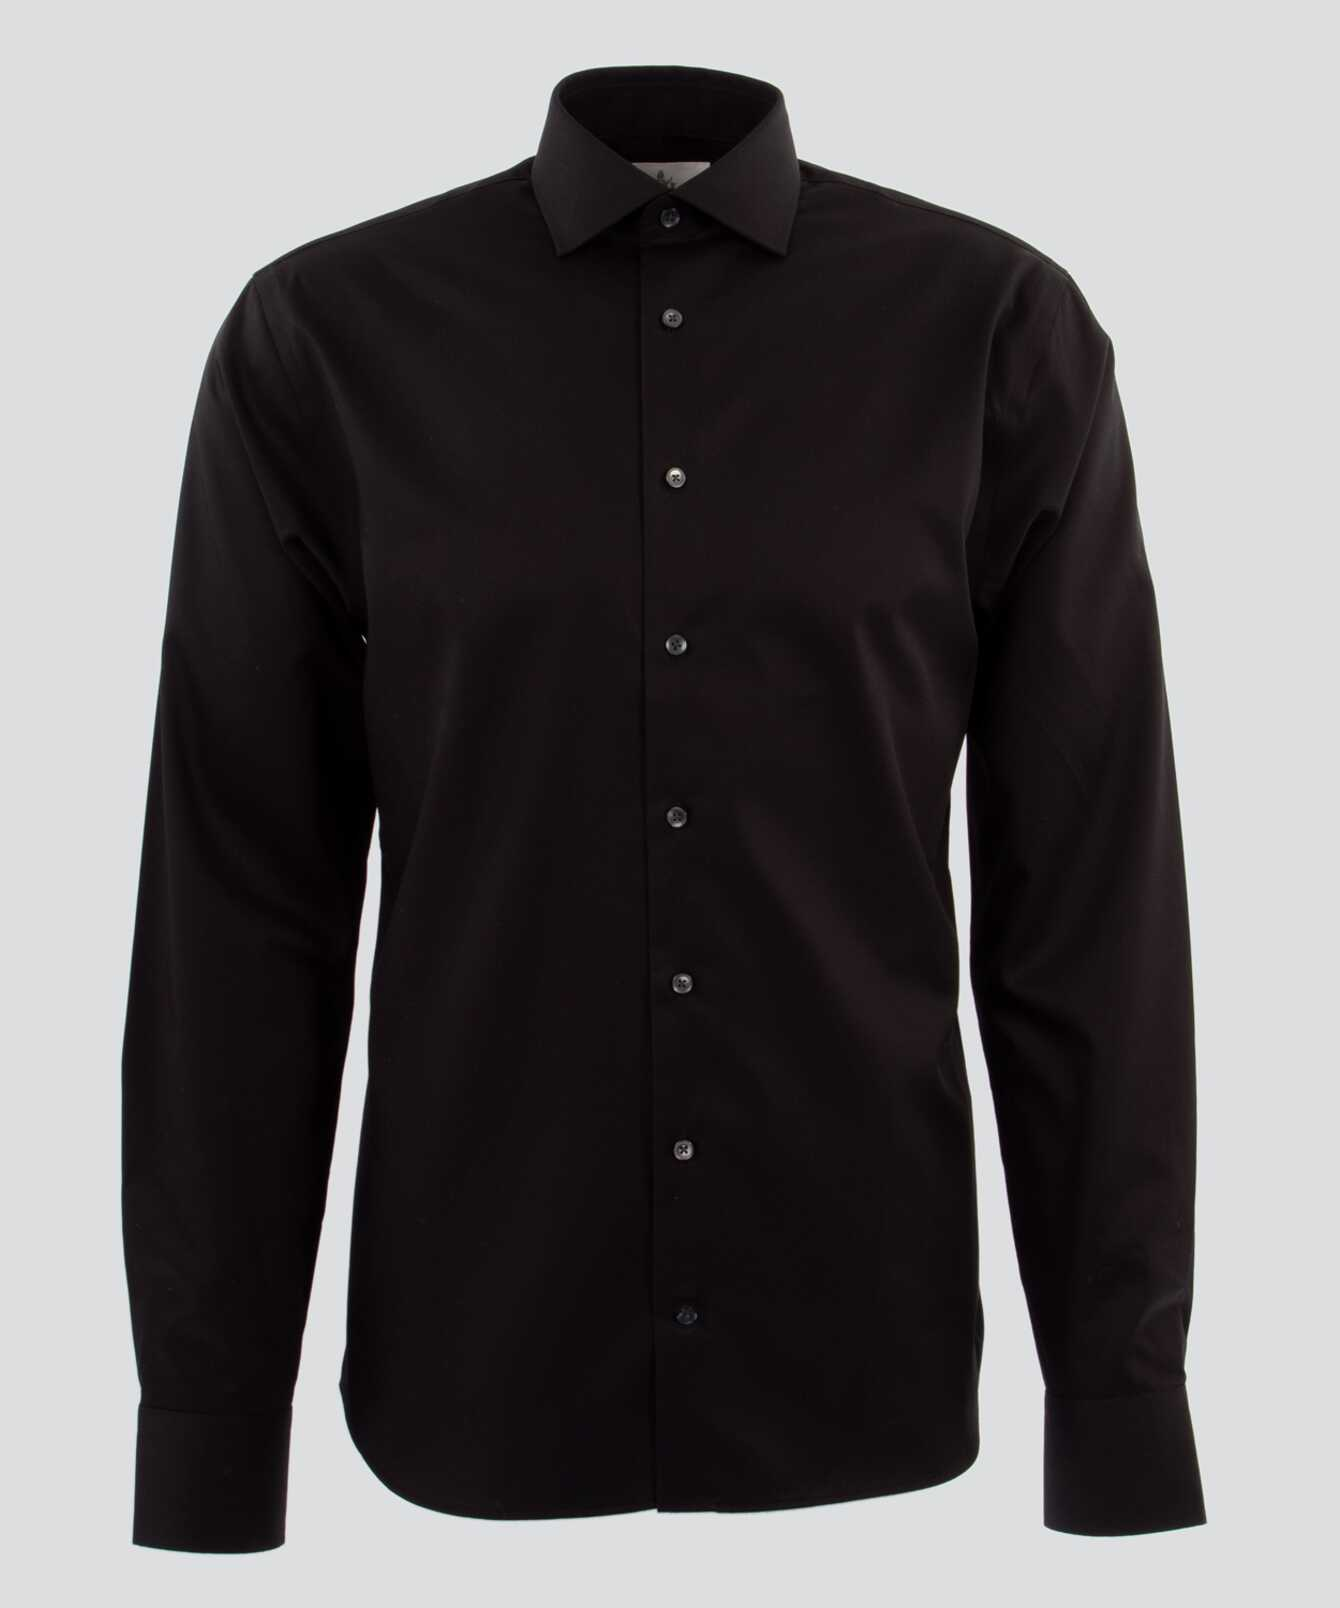 Skjorta Grand Twill Strykfri Svart The Shirt Factory